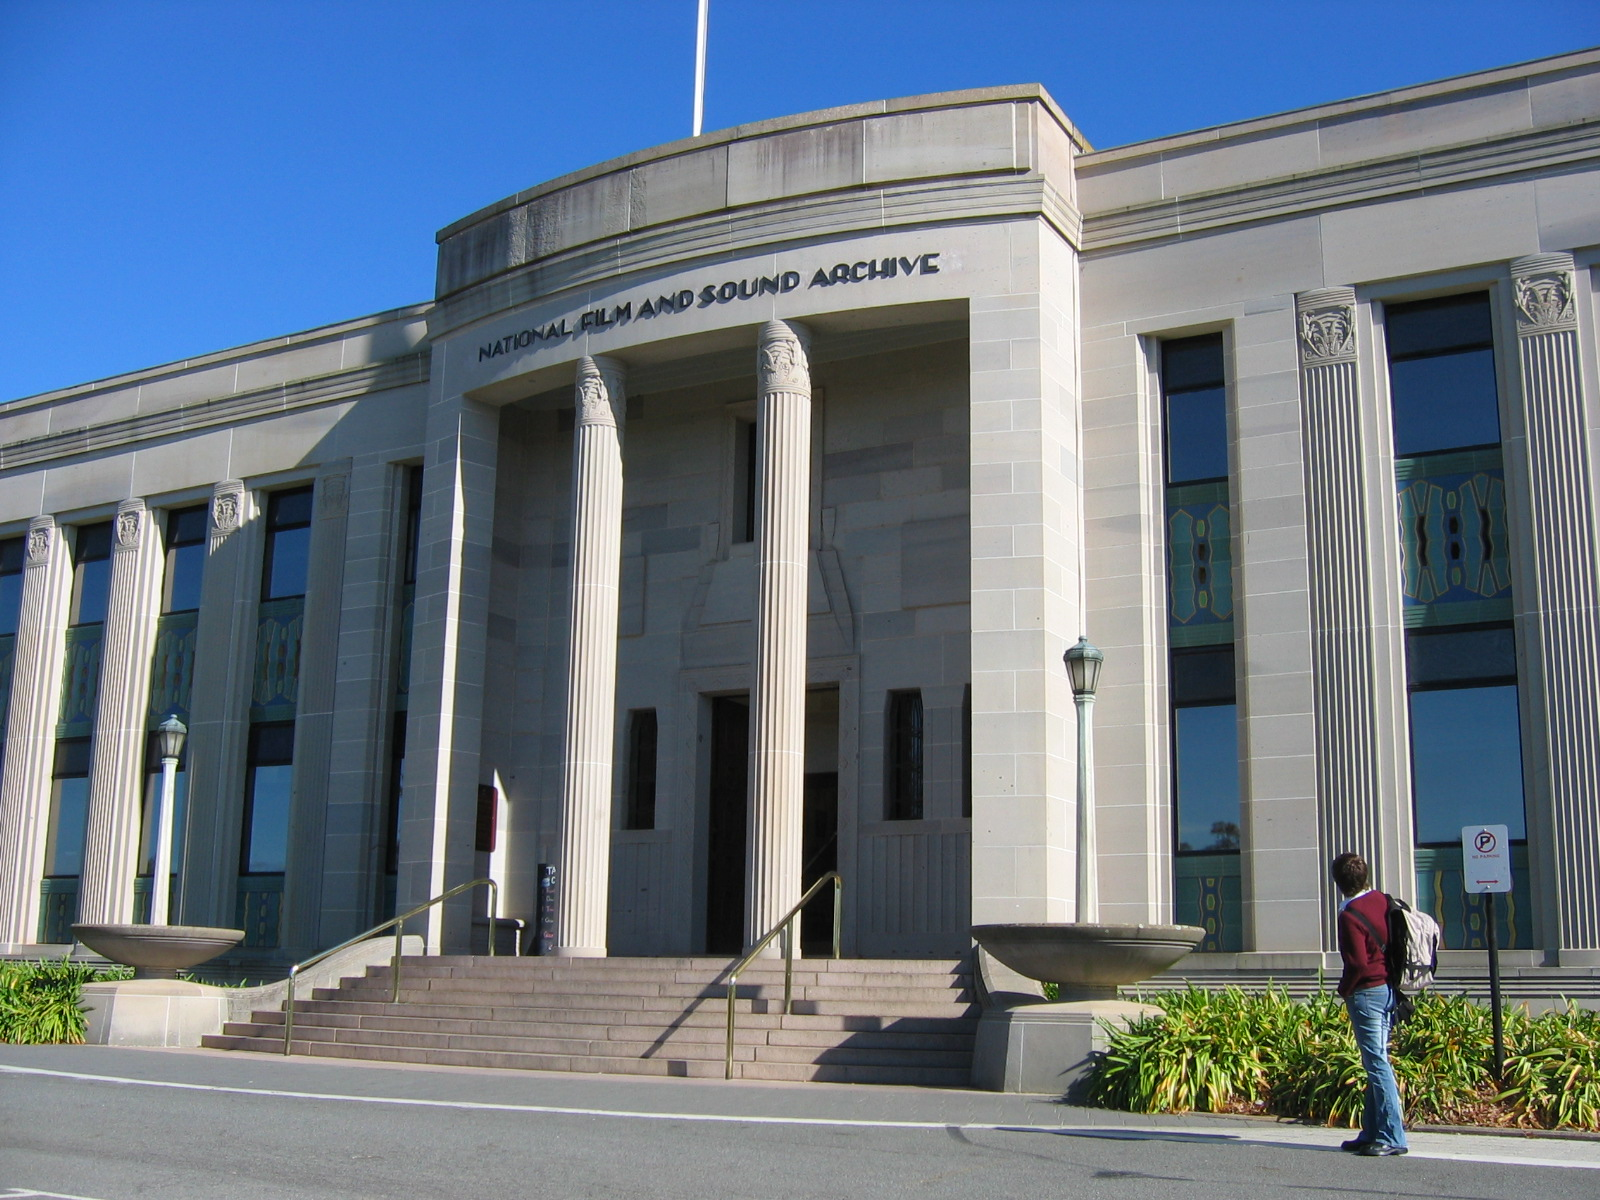 Australia\'s national film and sound archive